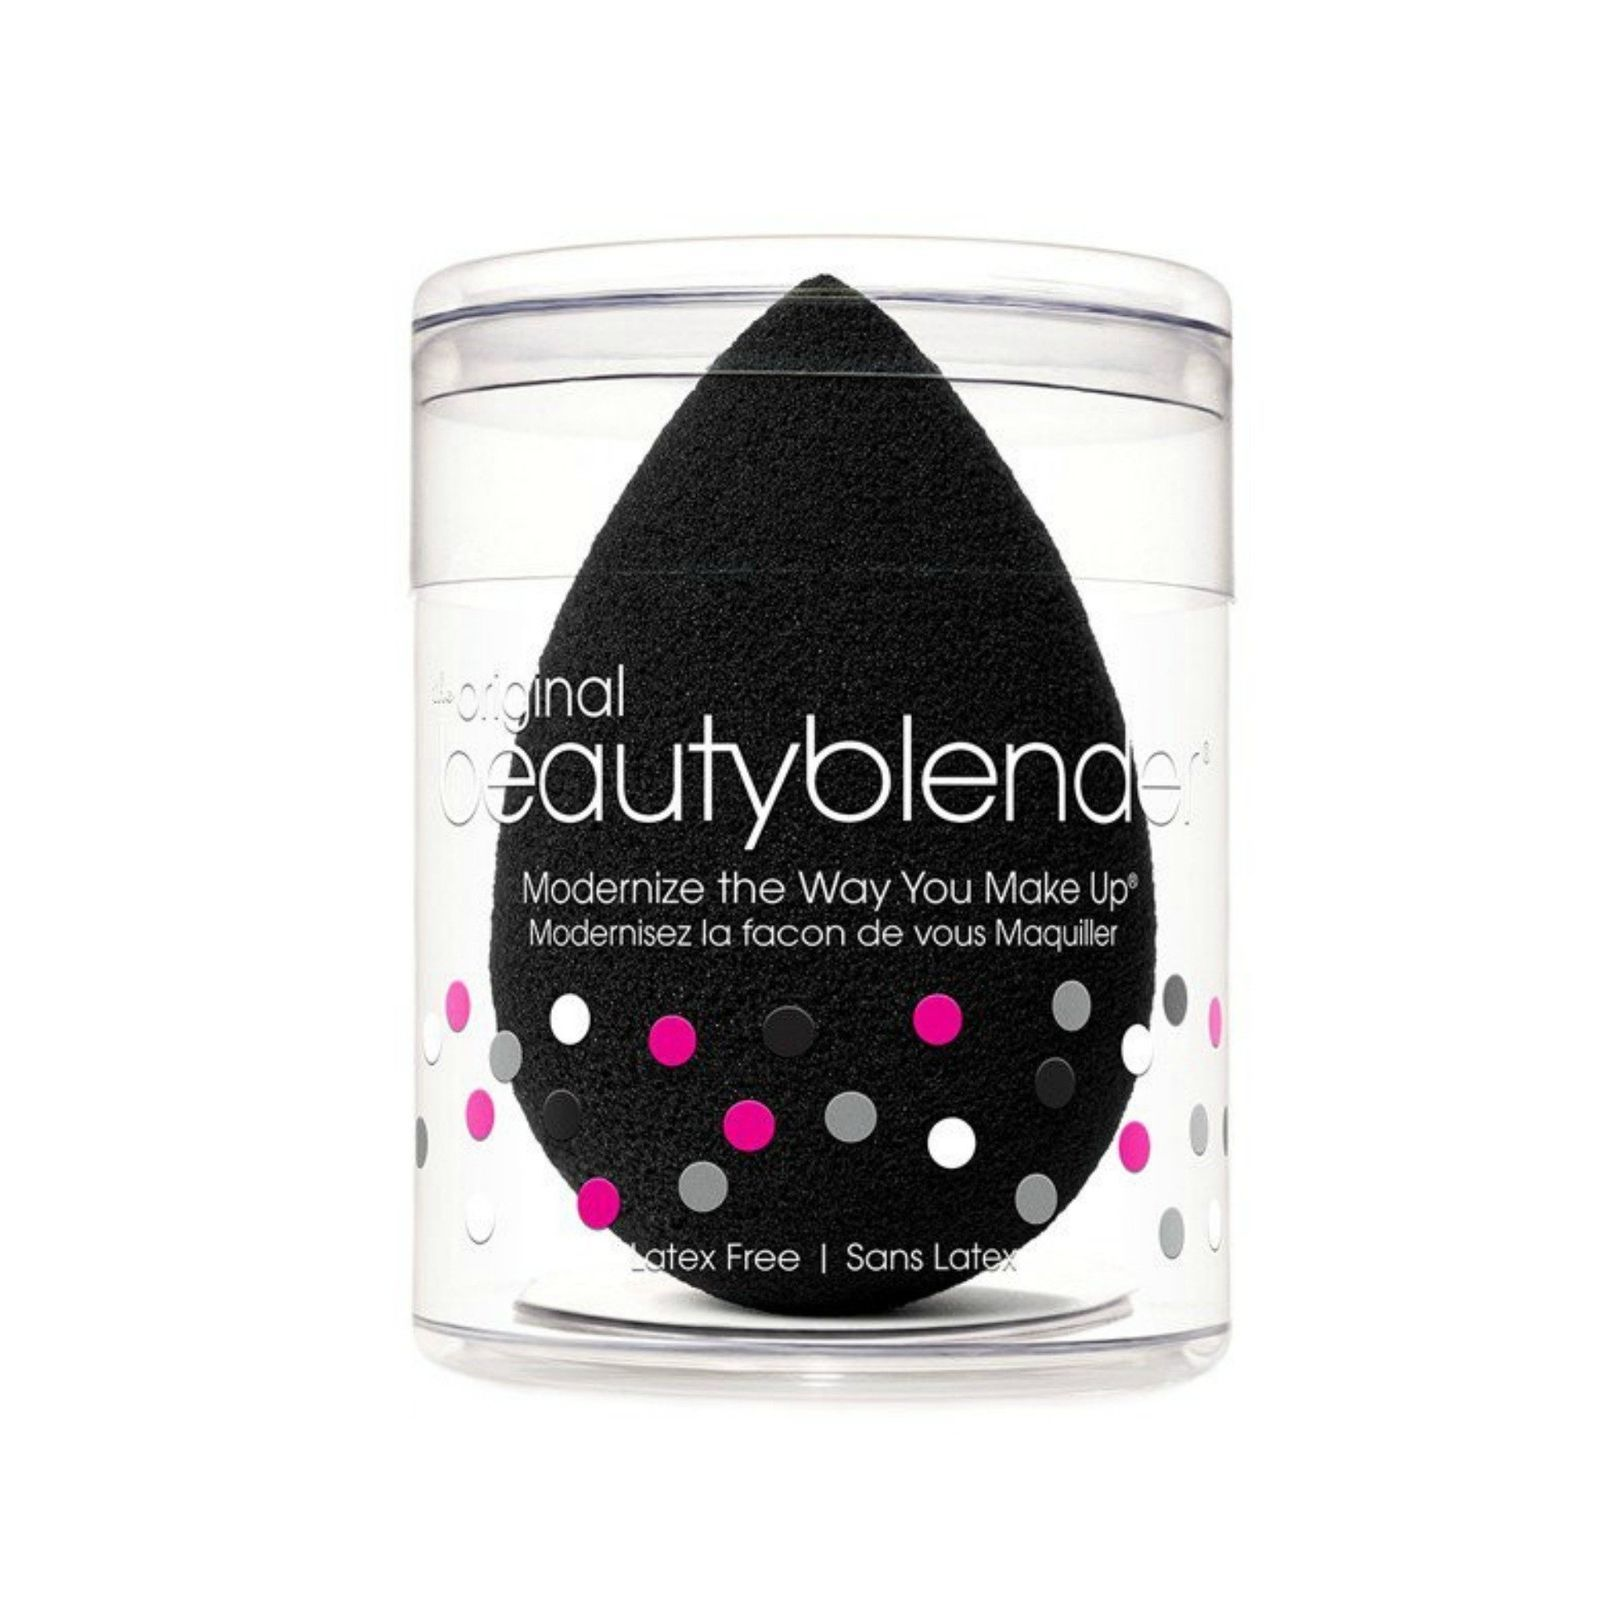 BeautyBlender BLACK Original Makeup Sponge AUTHENTIC Beauty Blender NEW